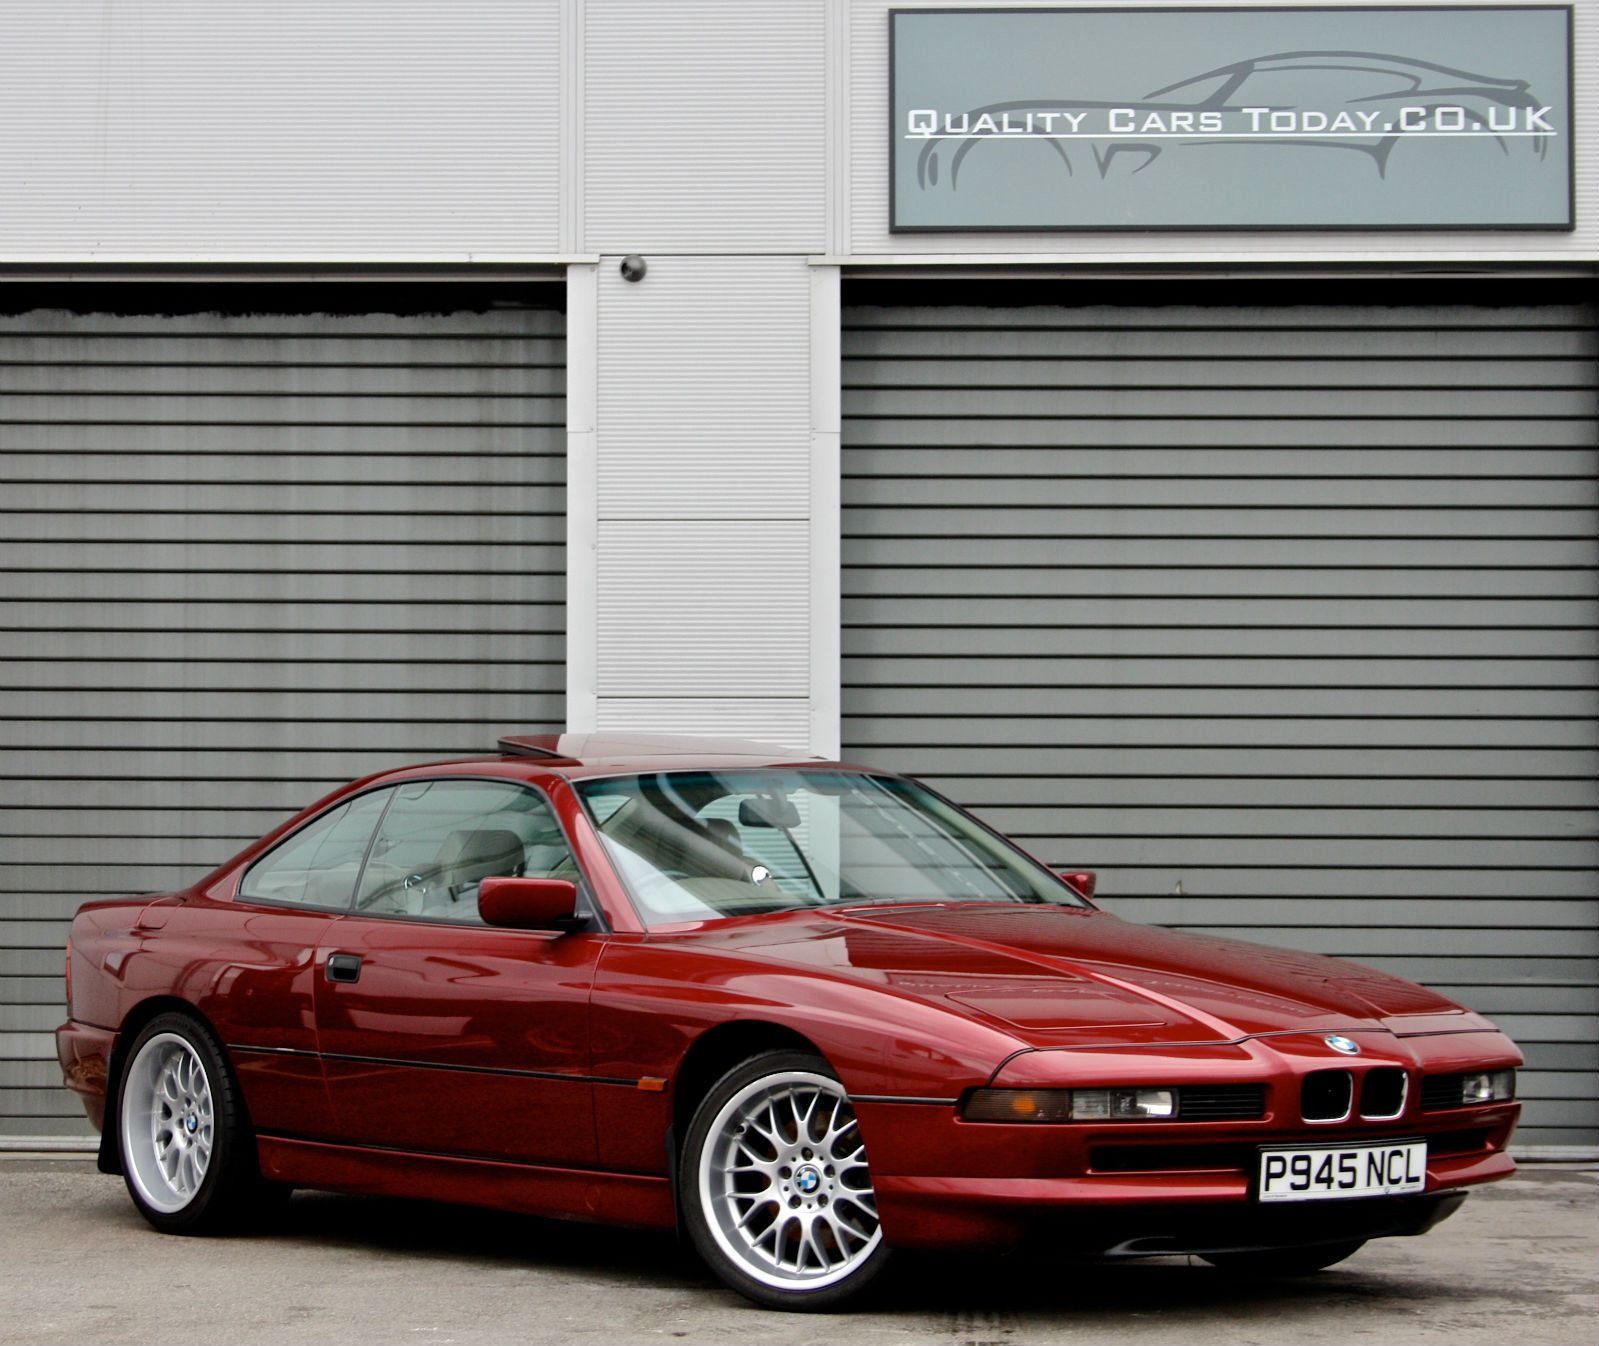 1996 Bmw 8 Series 840ci 840 Coupe 4 4 V8 Calypso Red 1 Owner